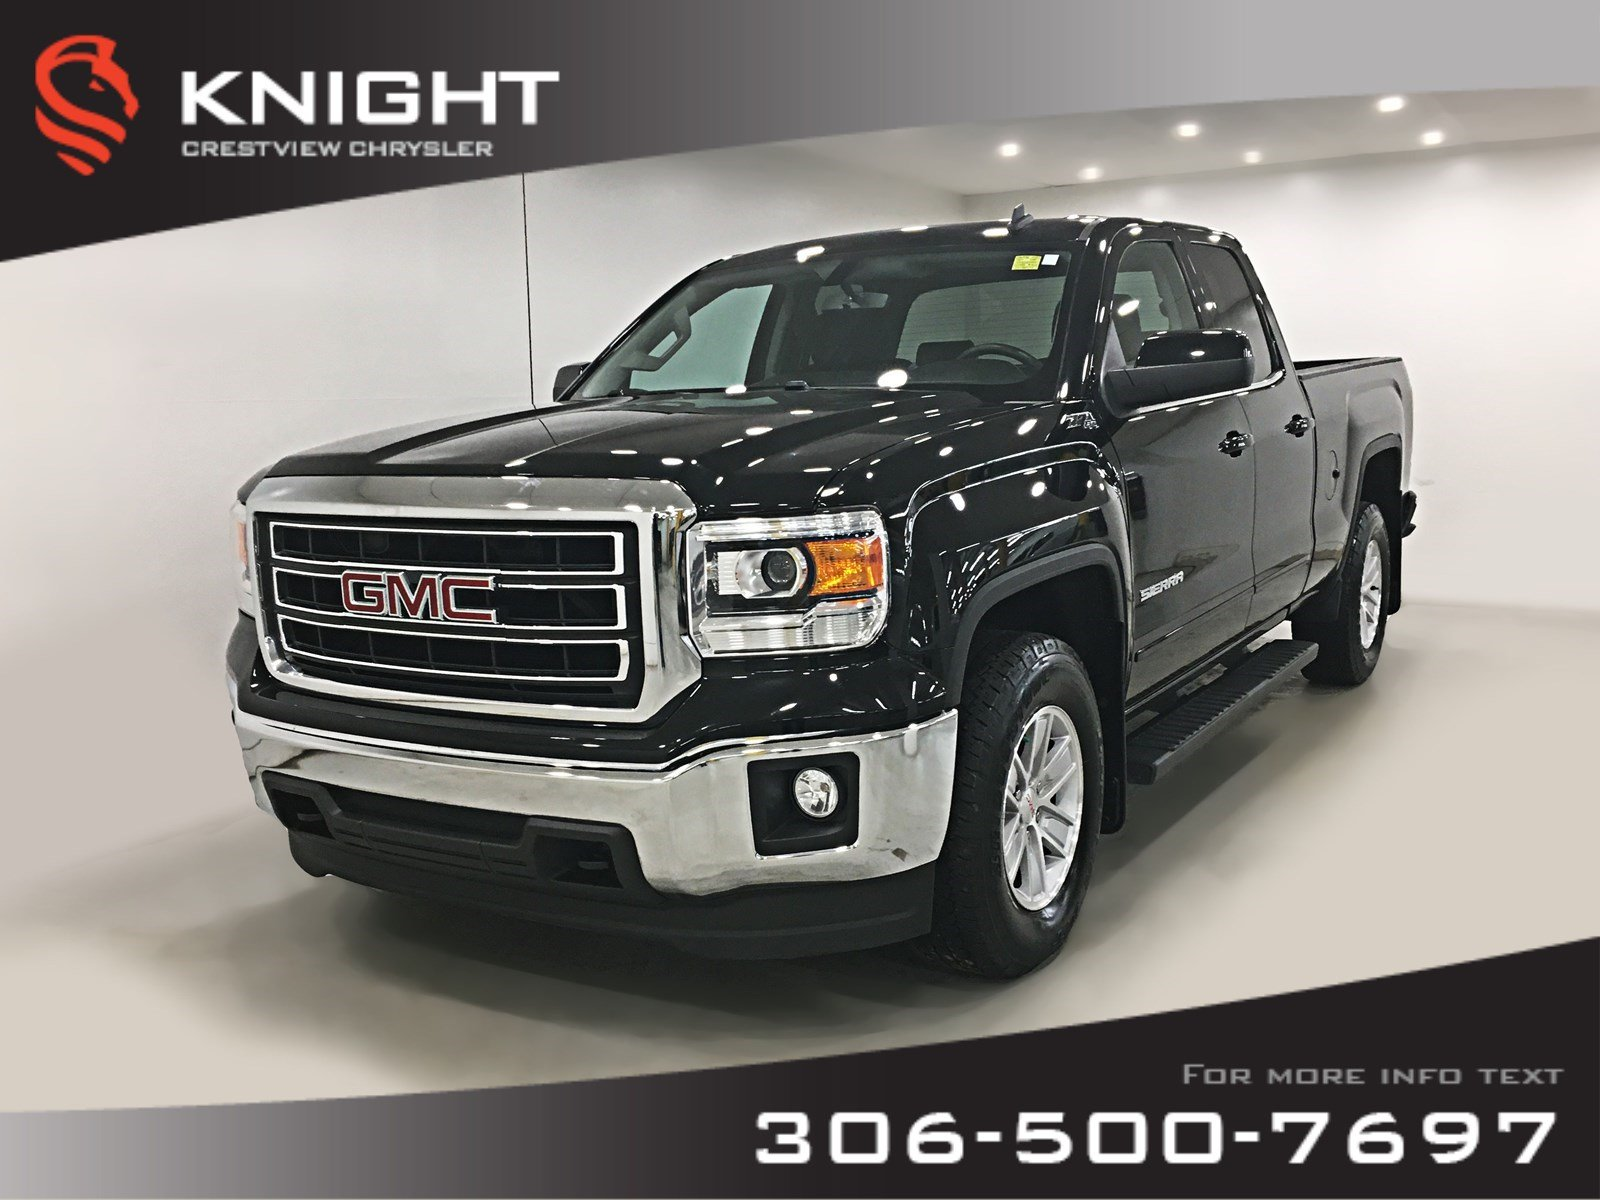 Certified Pre-Owned 2014 GMC Sierra 1500 SLE Double Cab | Remote Start